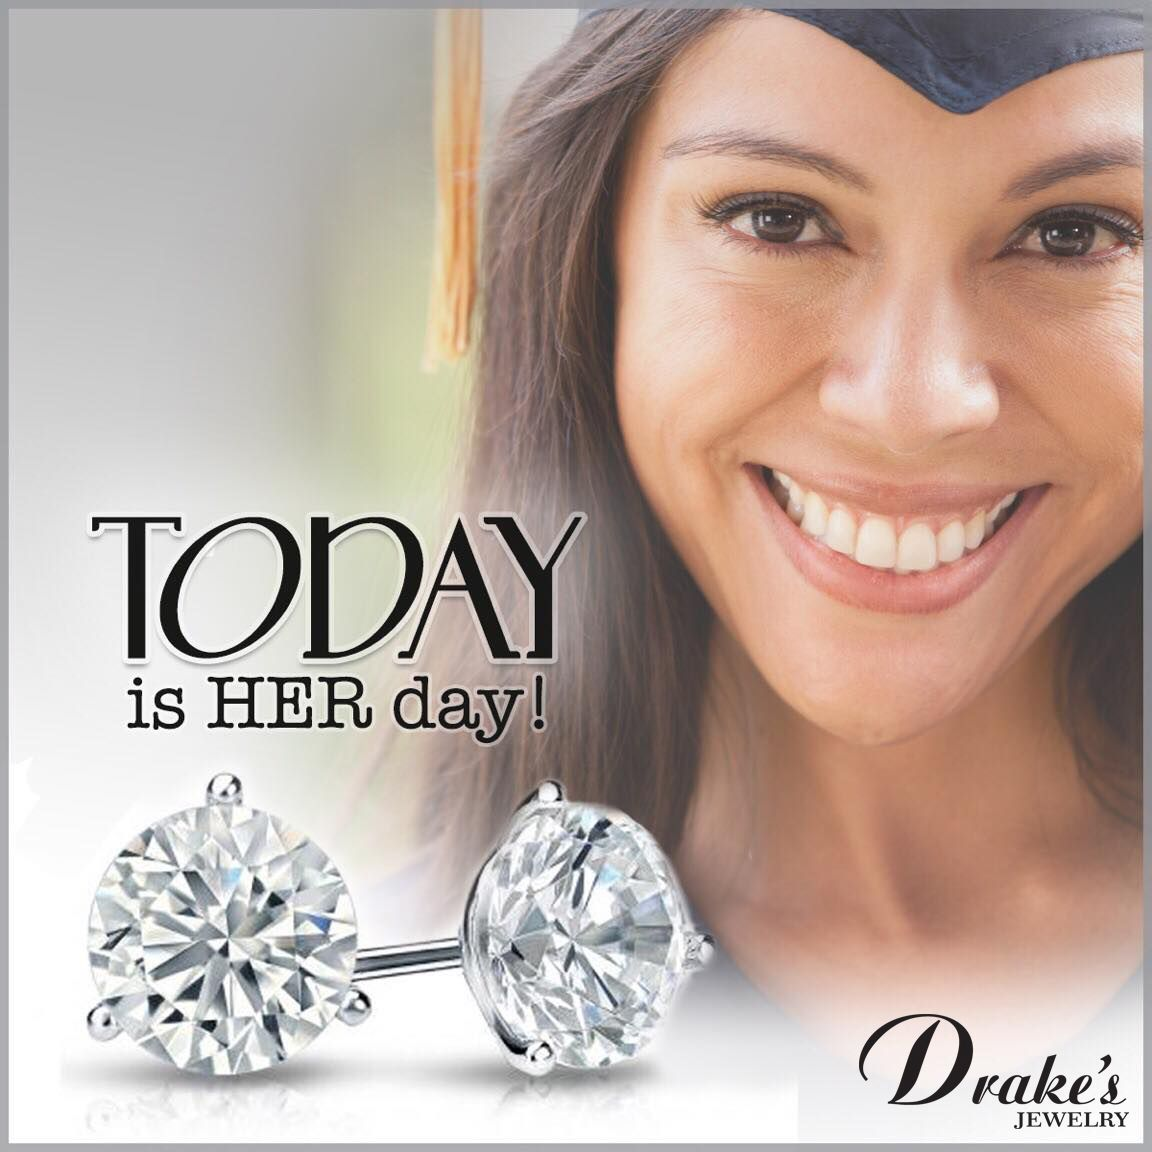 7429f4a2a We are a family owned jewelry store in Muncy, PA, specializing in bridal  and fine quality jewelry.